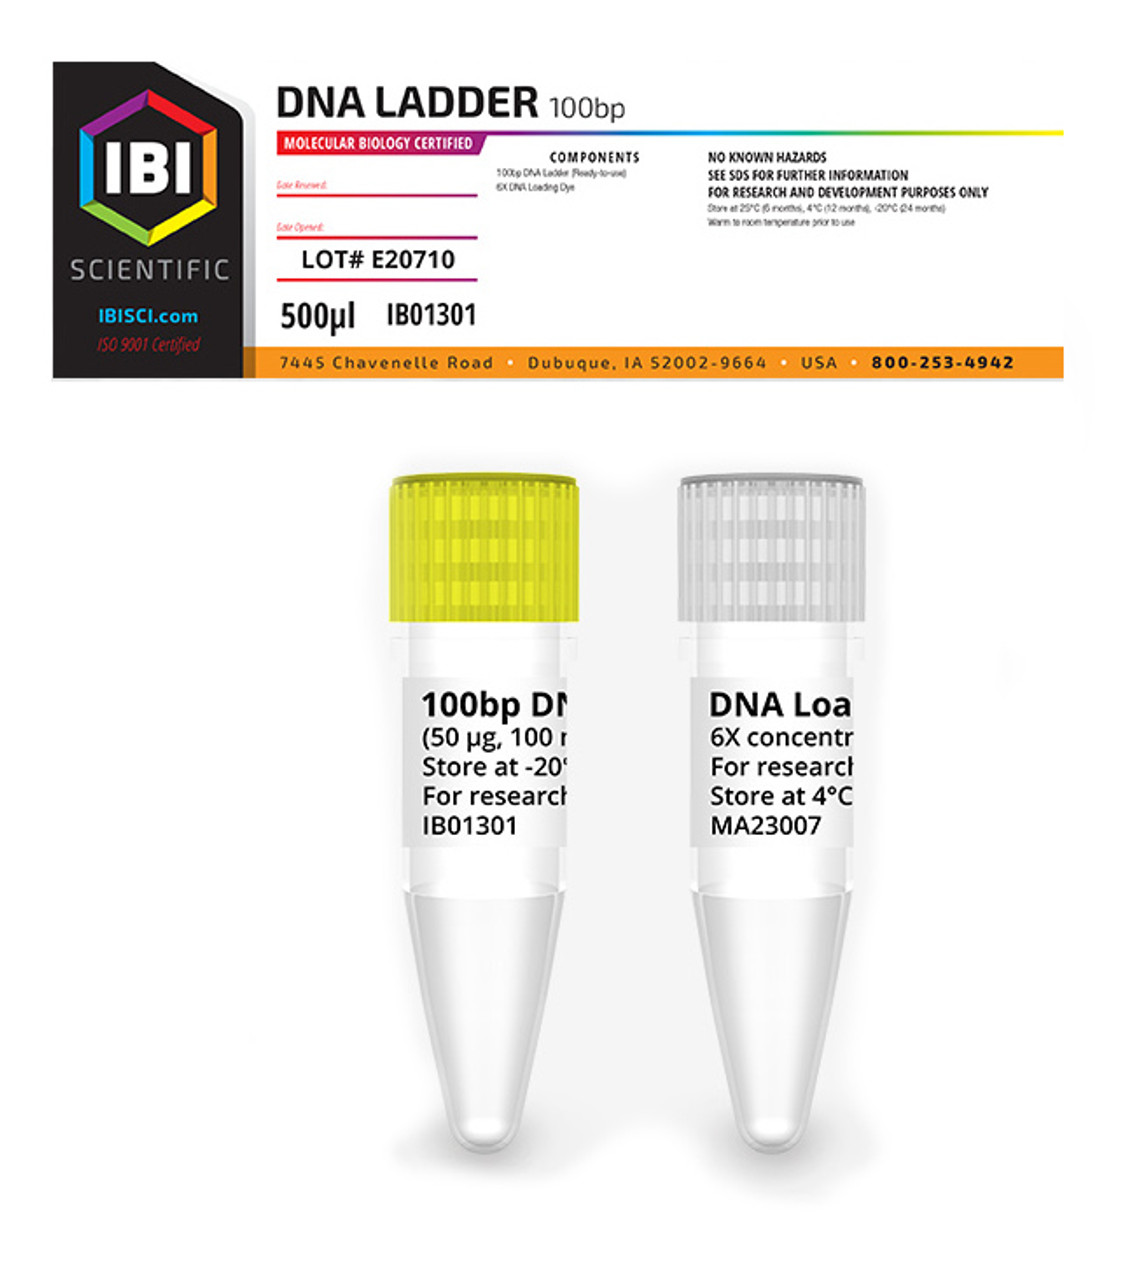 IBI - 100BP DNA LADDER